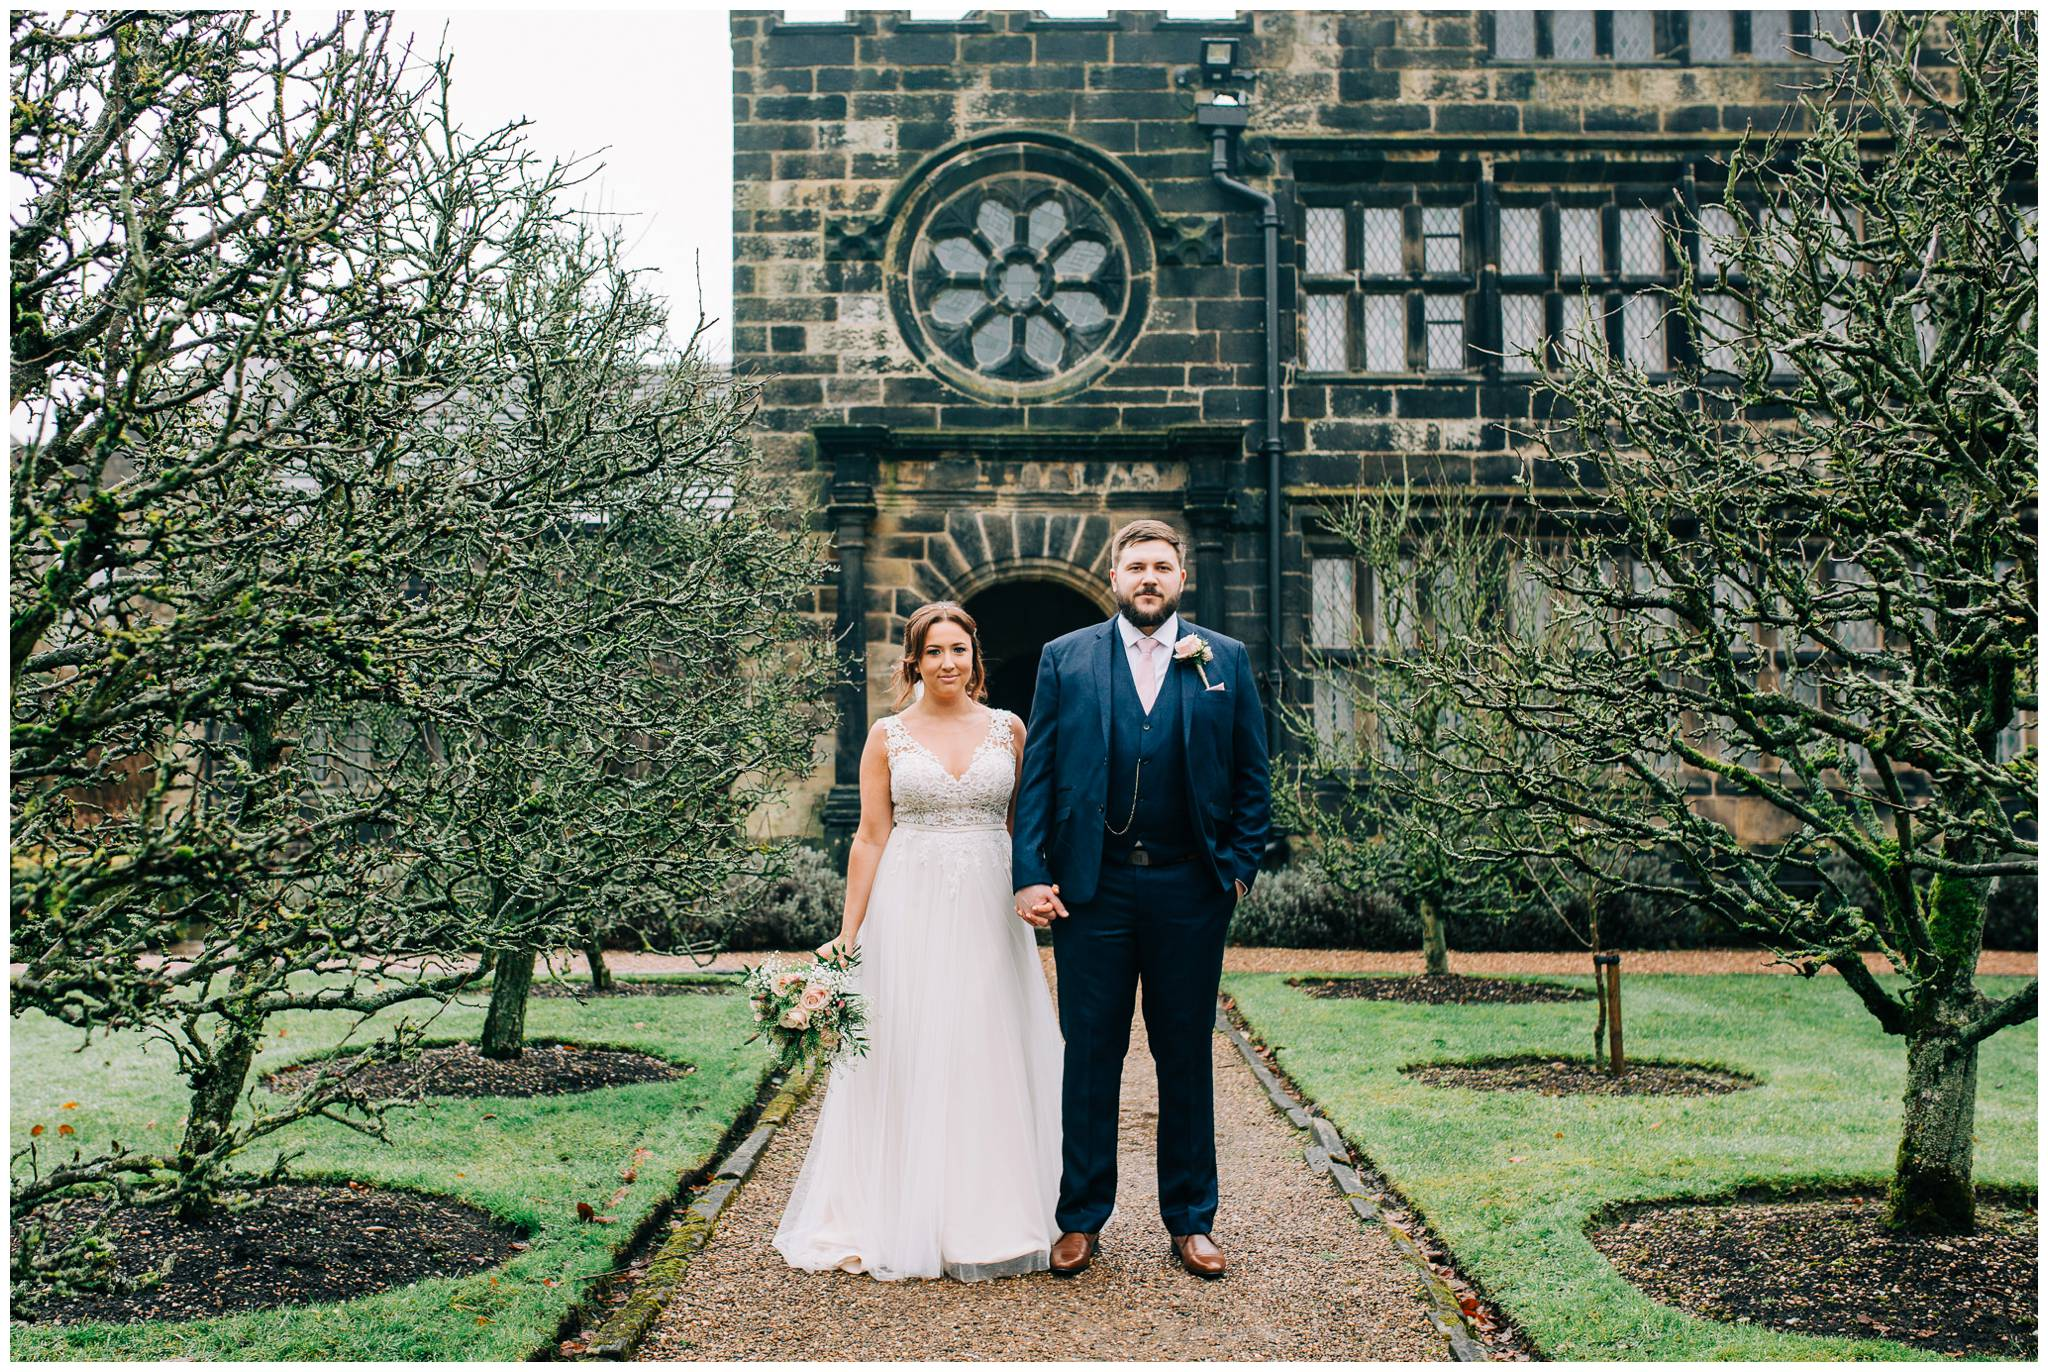 East Riddlesden Hall Photographer - Rustic winter Barn Wedding_0044.jpg